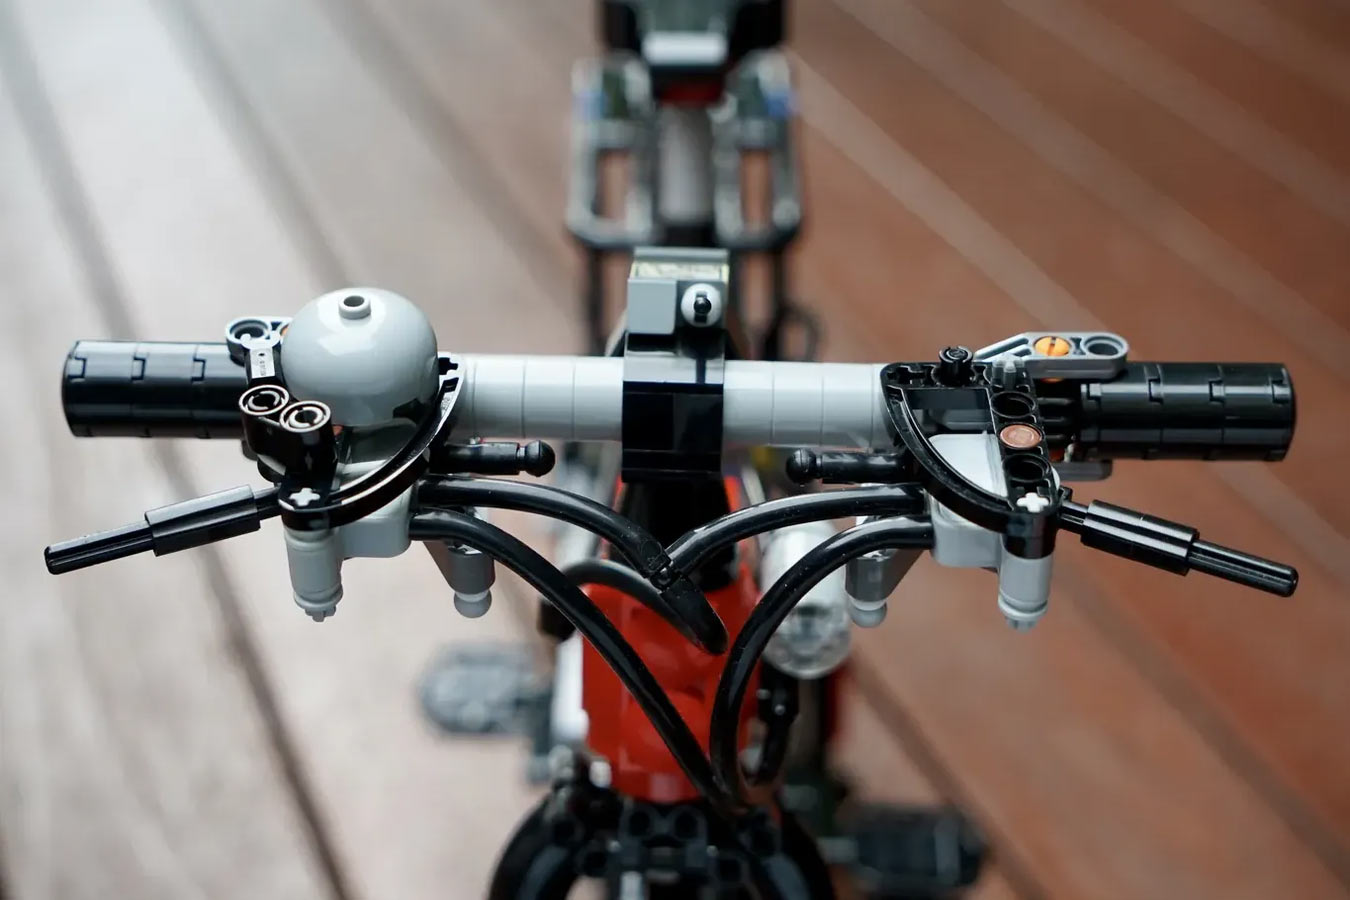 lego bicycle handlebar with bell and brake levers